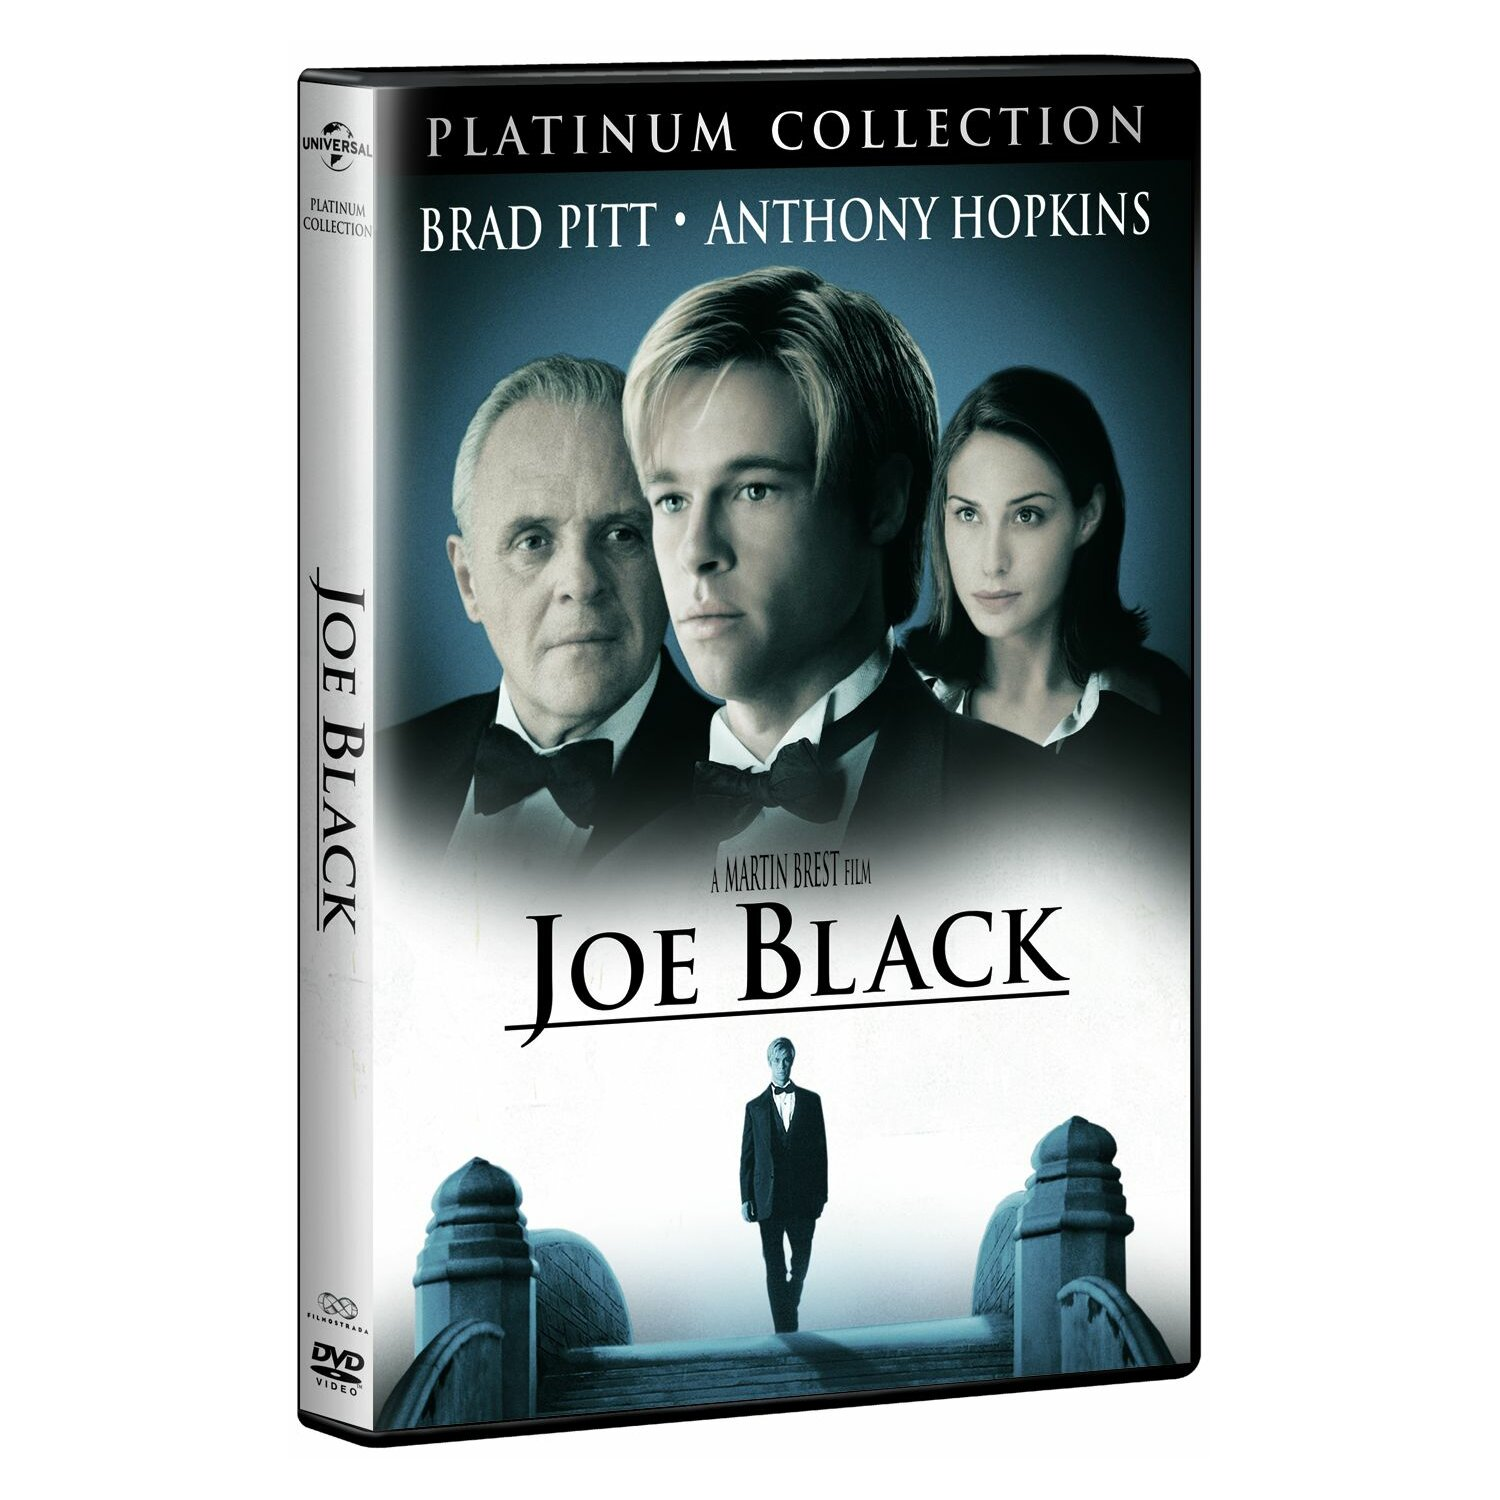 Joe Black (DVD) Platinum Collection